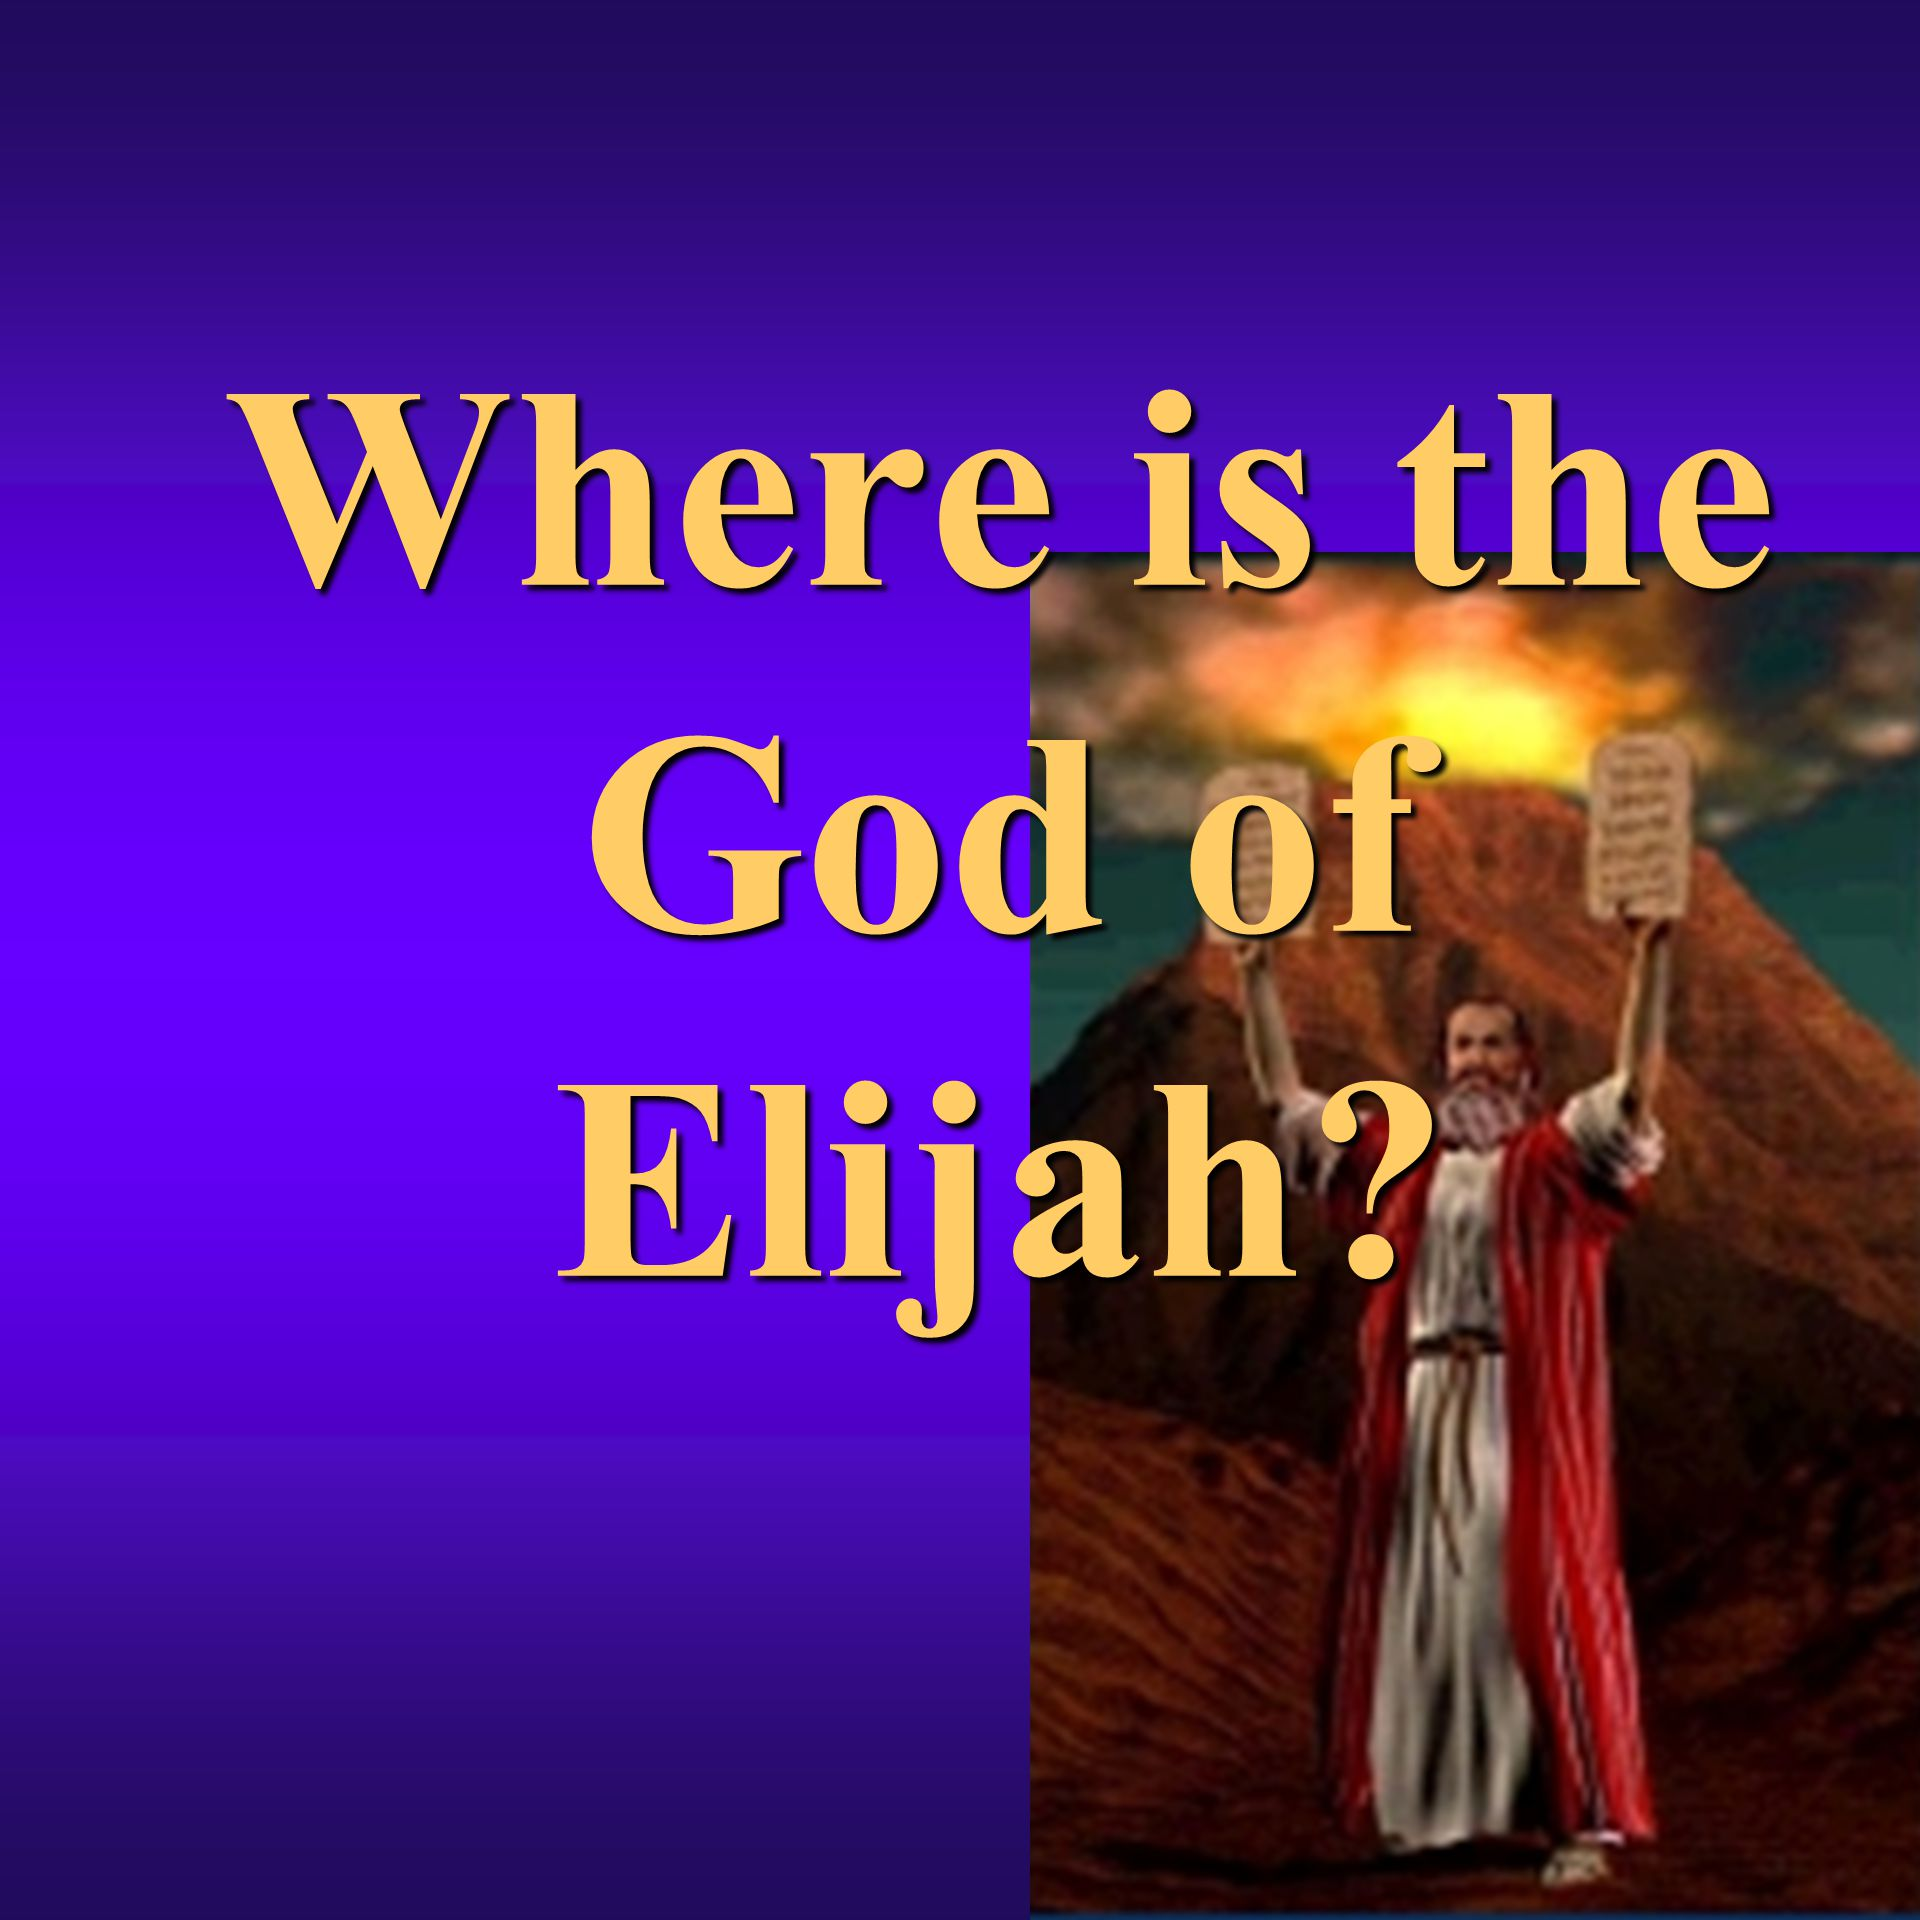 Where is the God of Elijah?